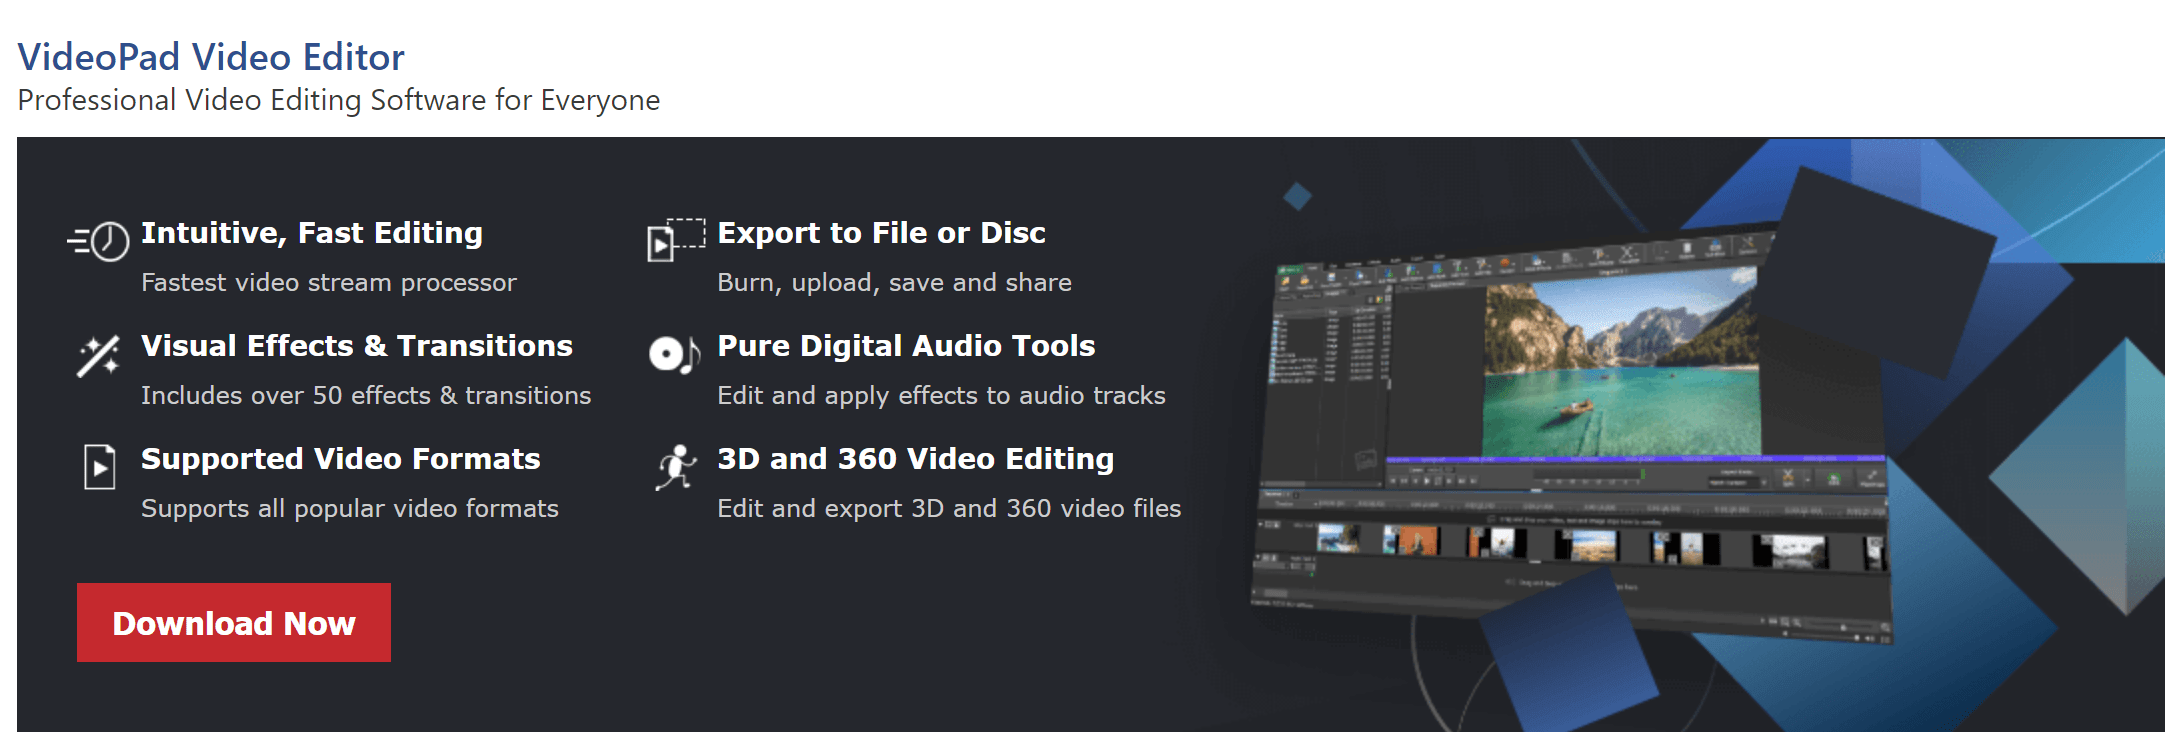 Features of videopad pro tool and registration code